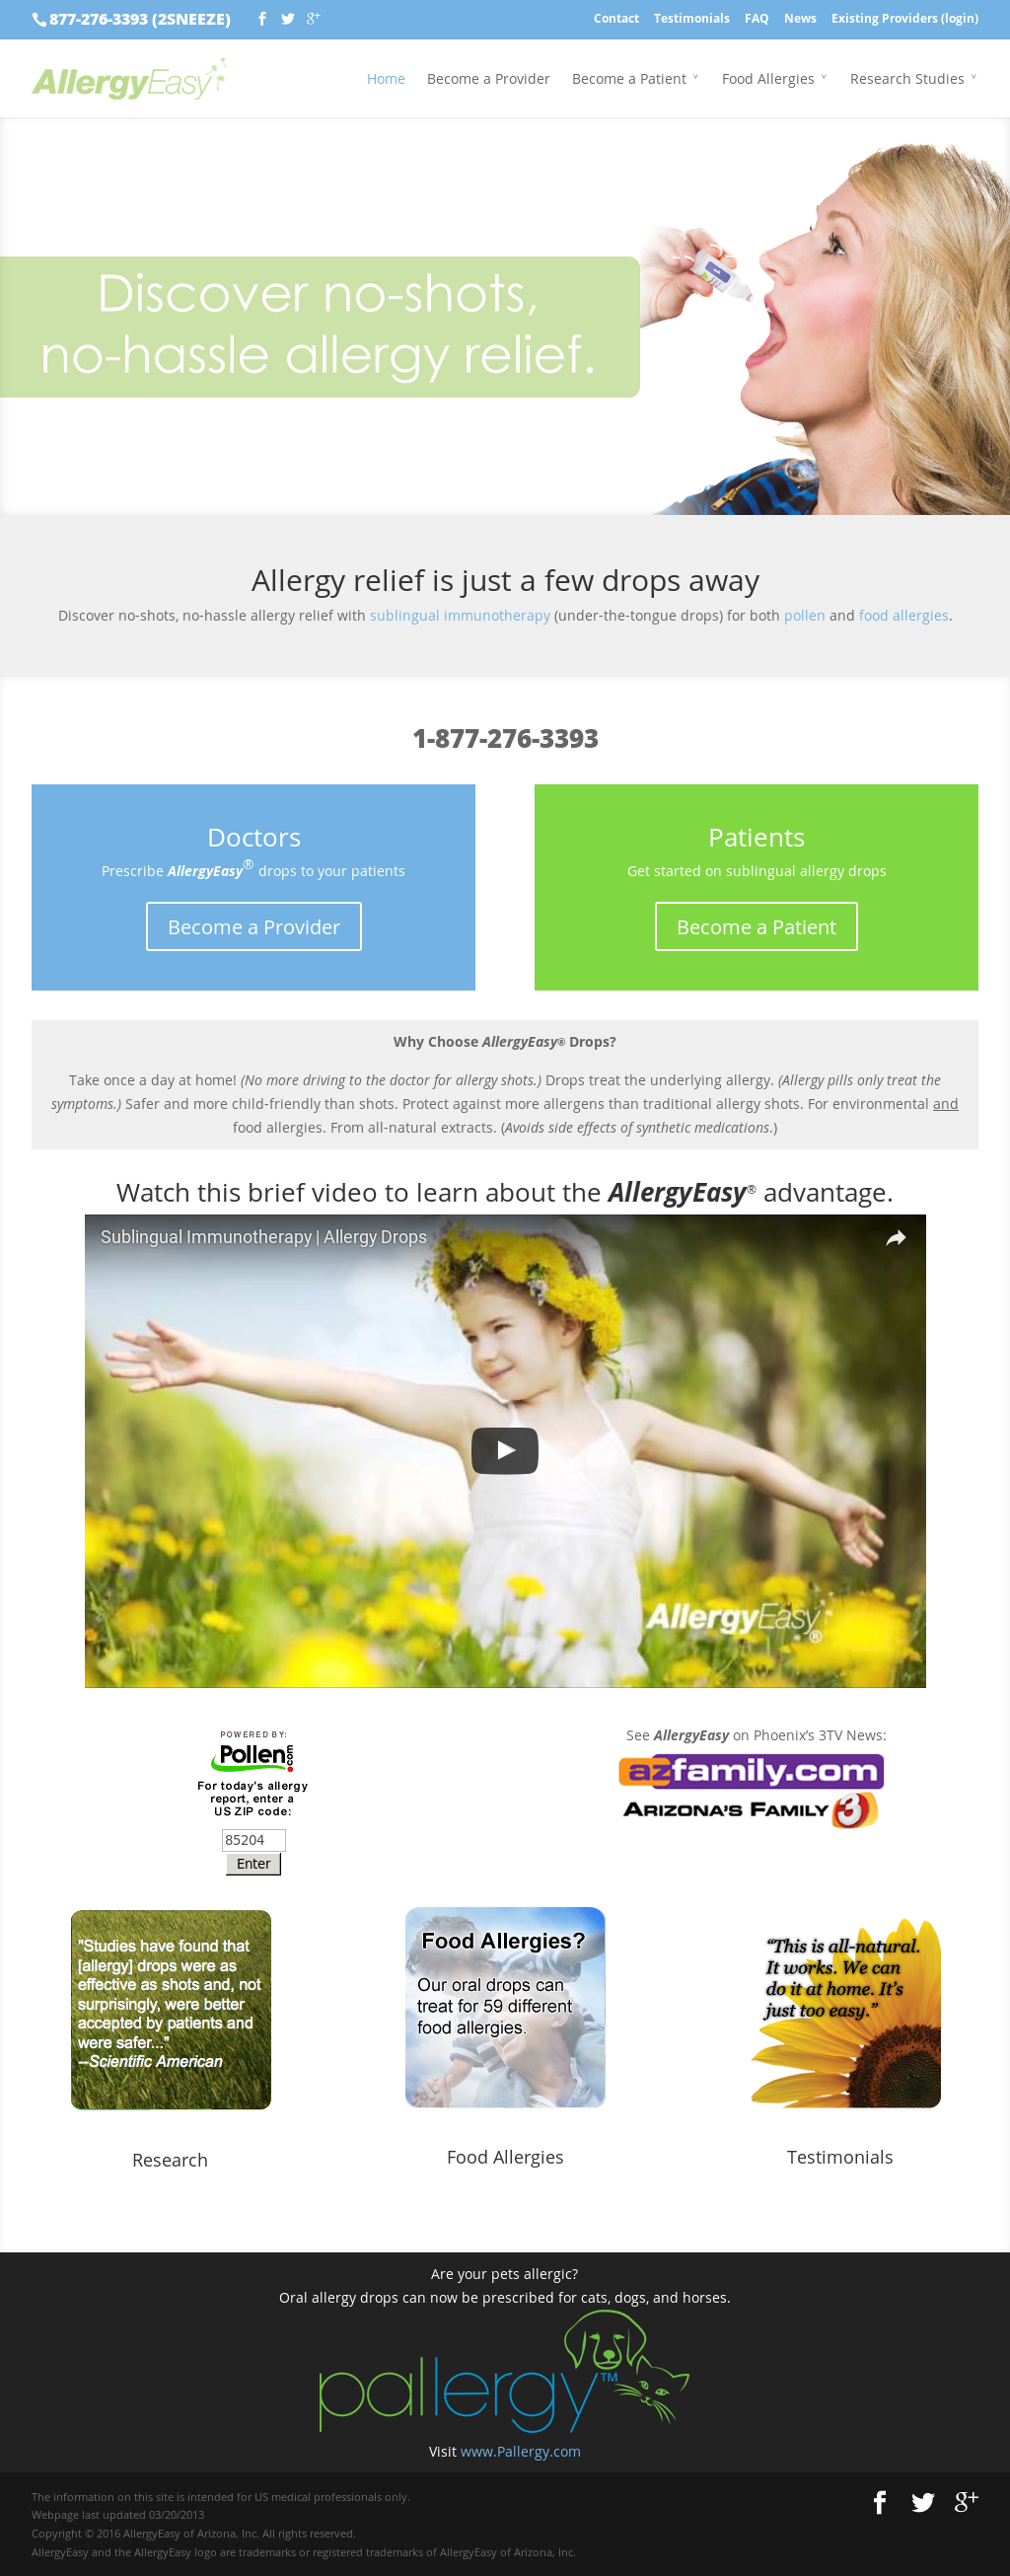 AllergyEasy Competitors, Revenue and Employees - Owler